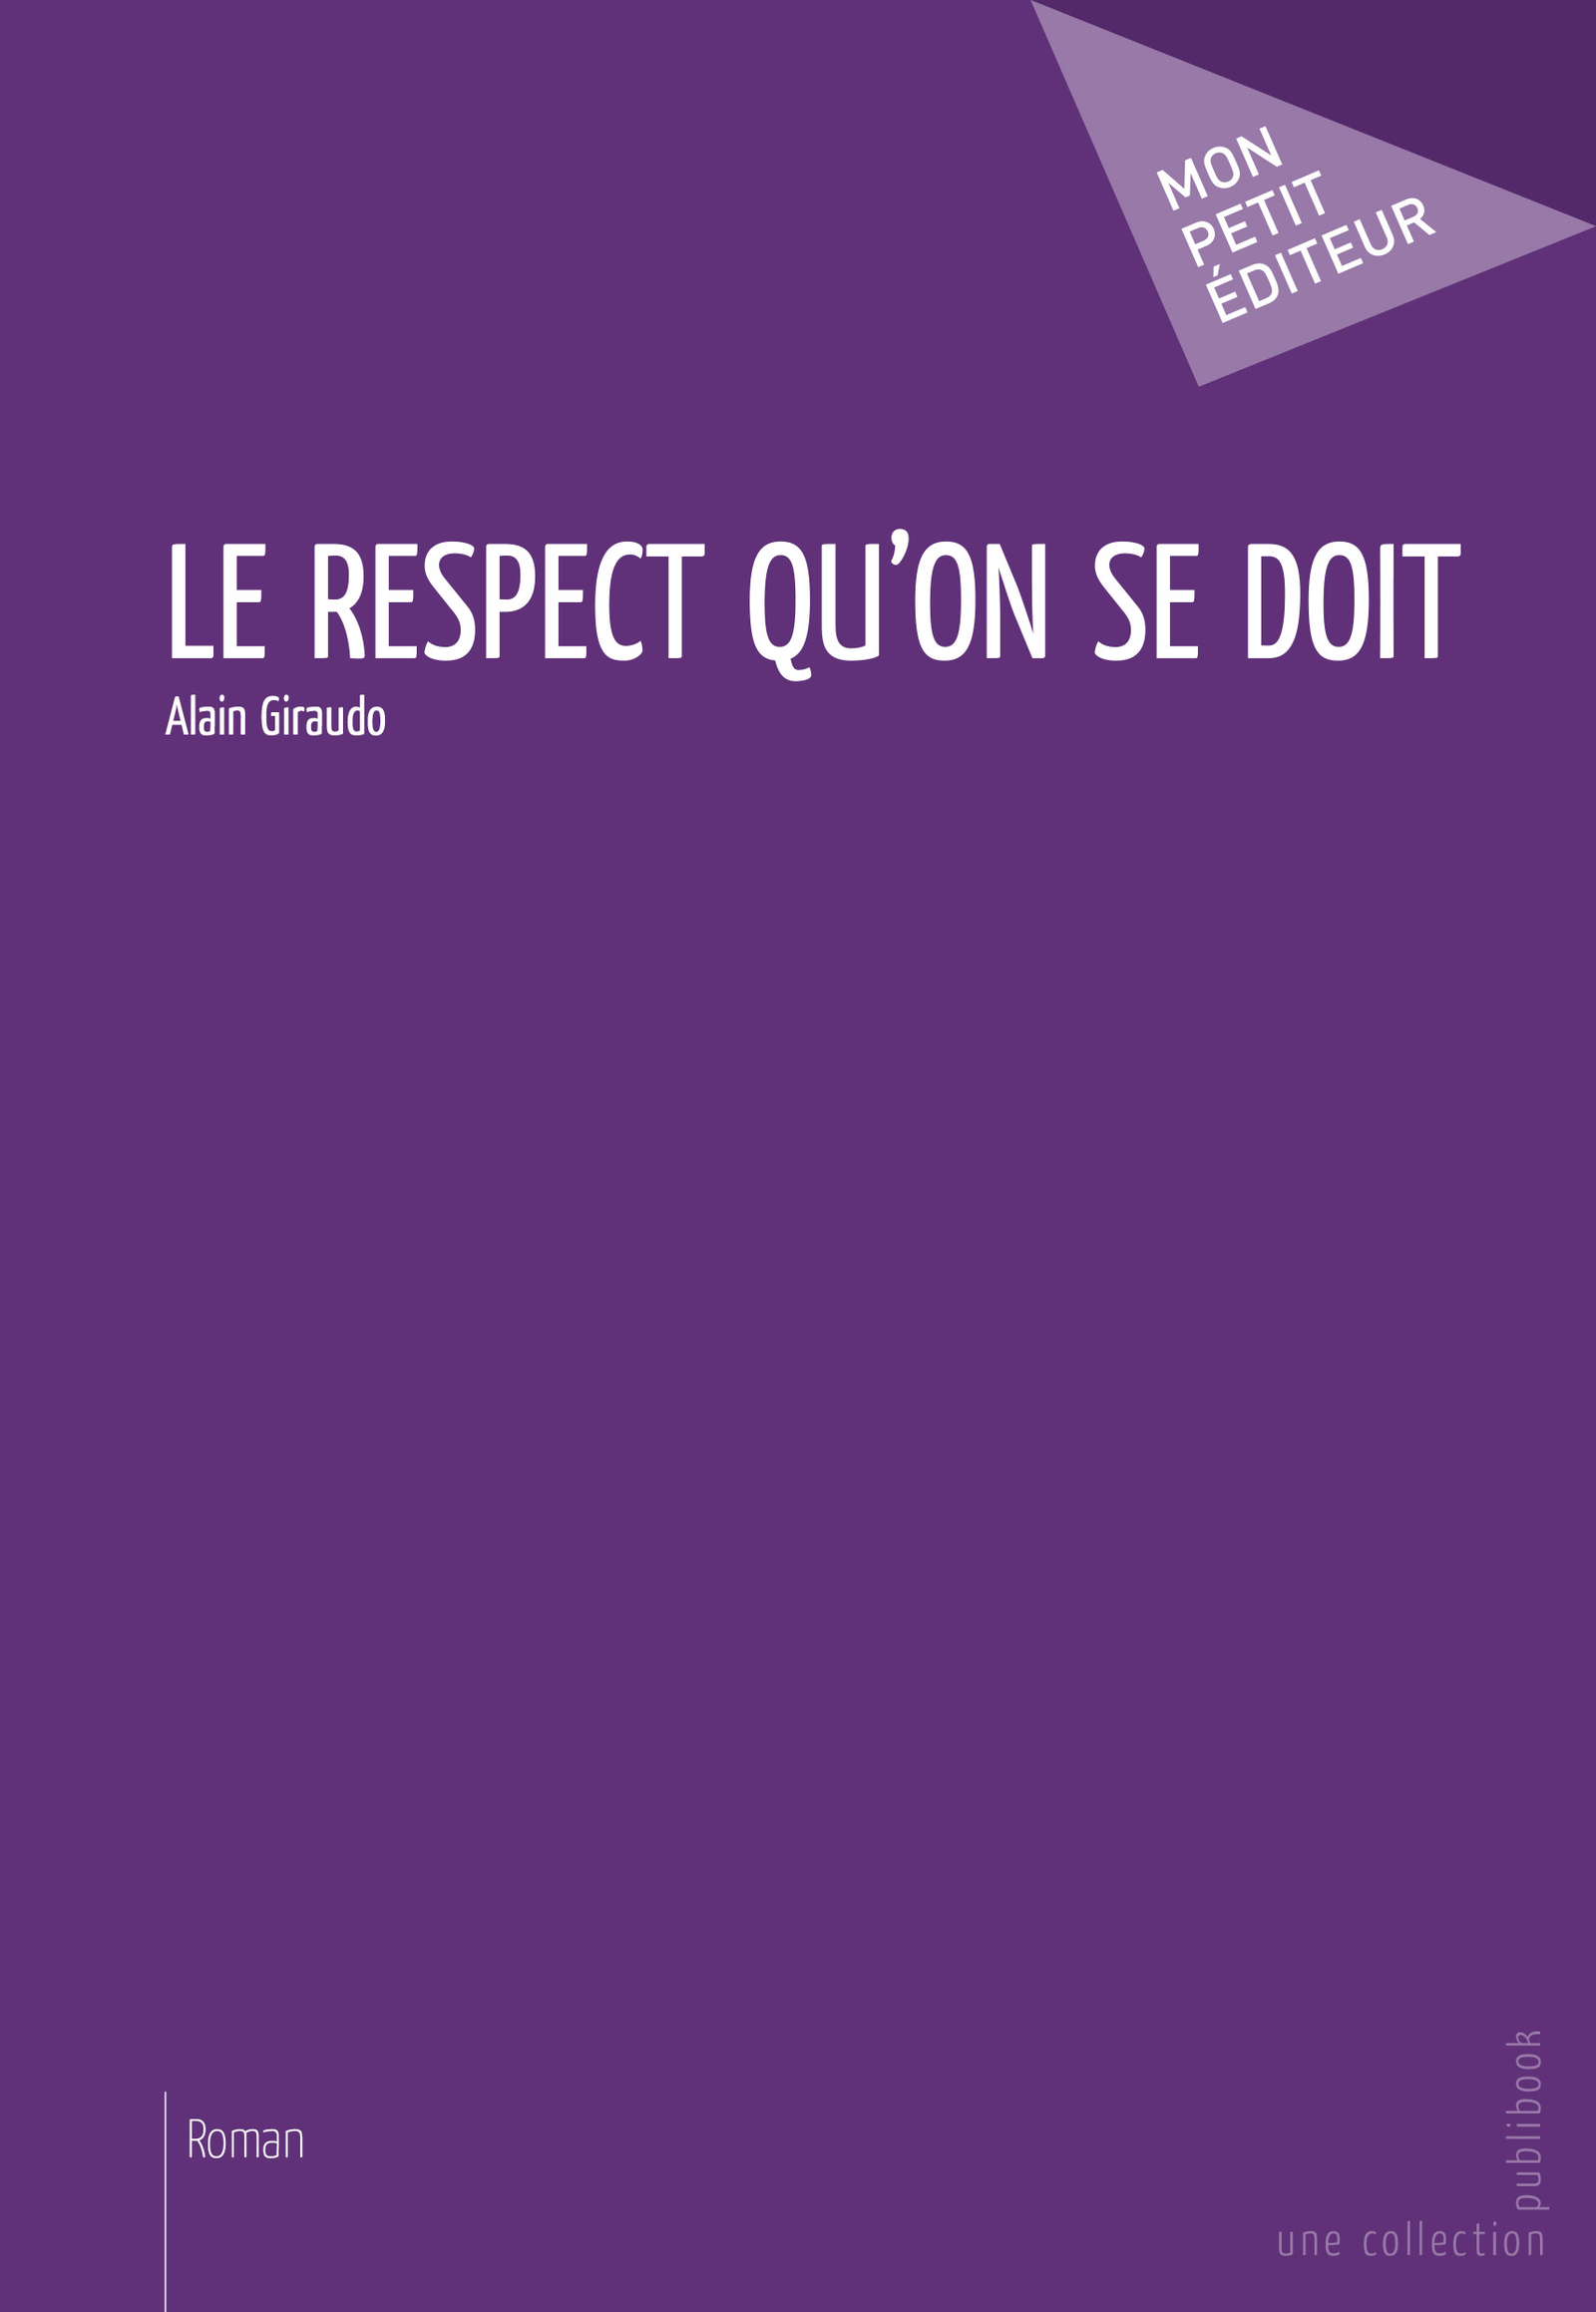 Le Respect qu'on se doit